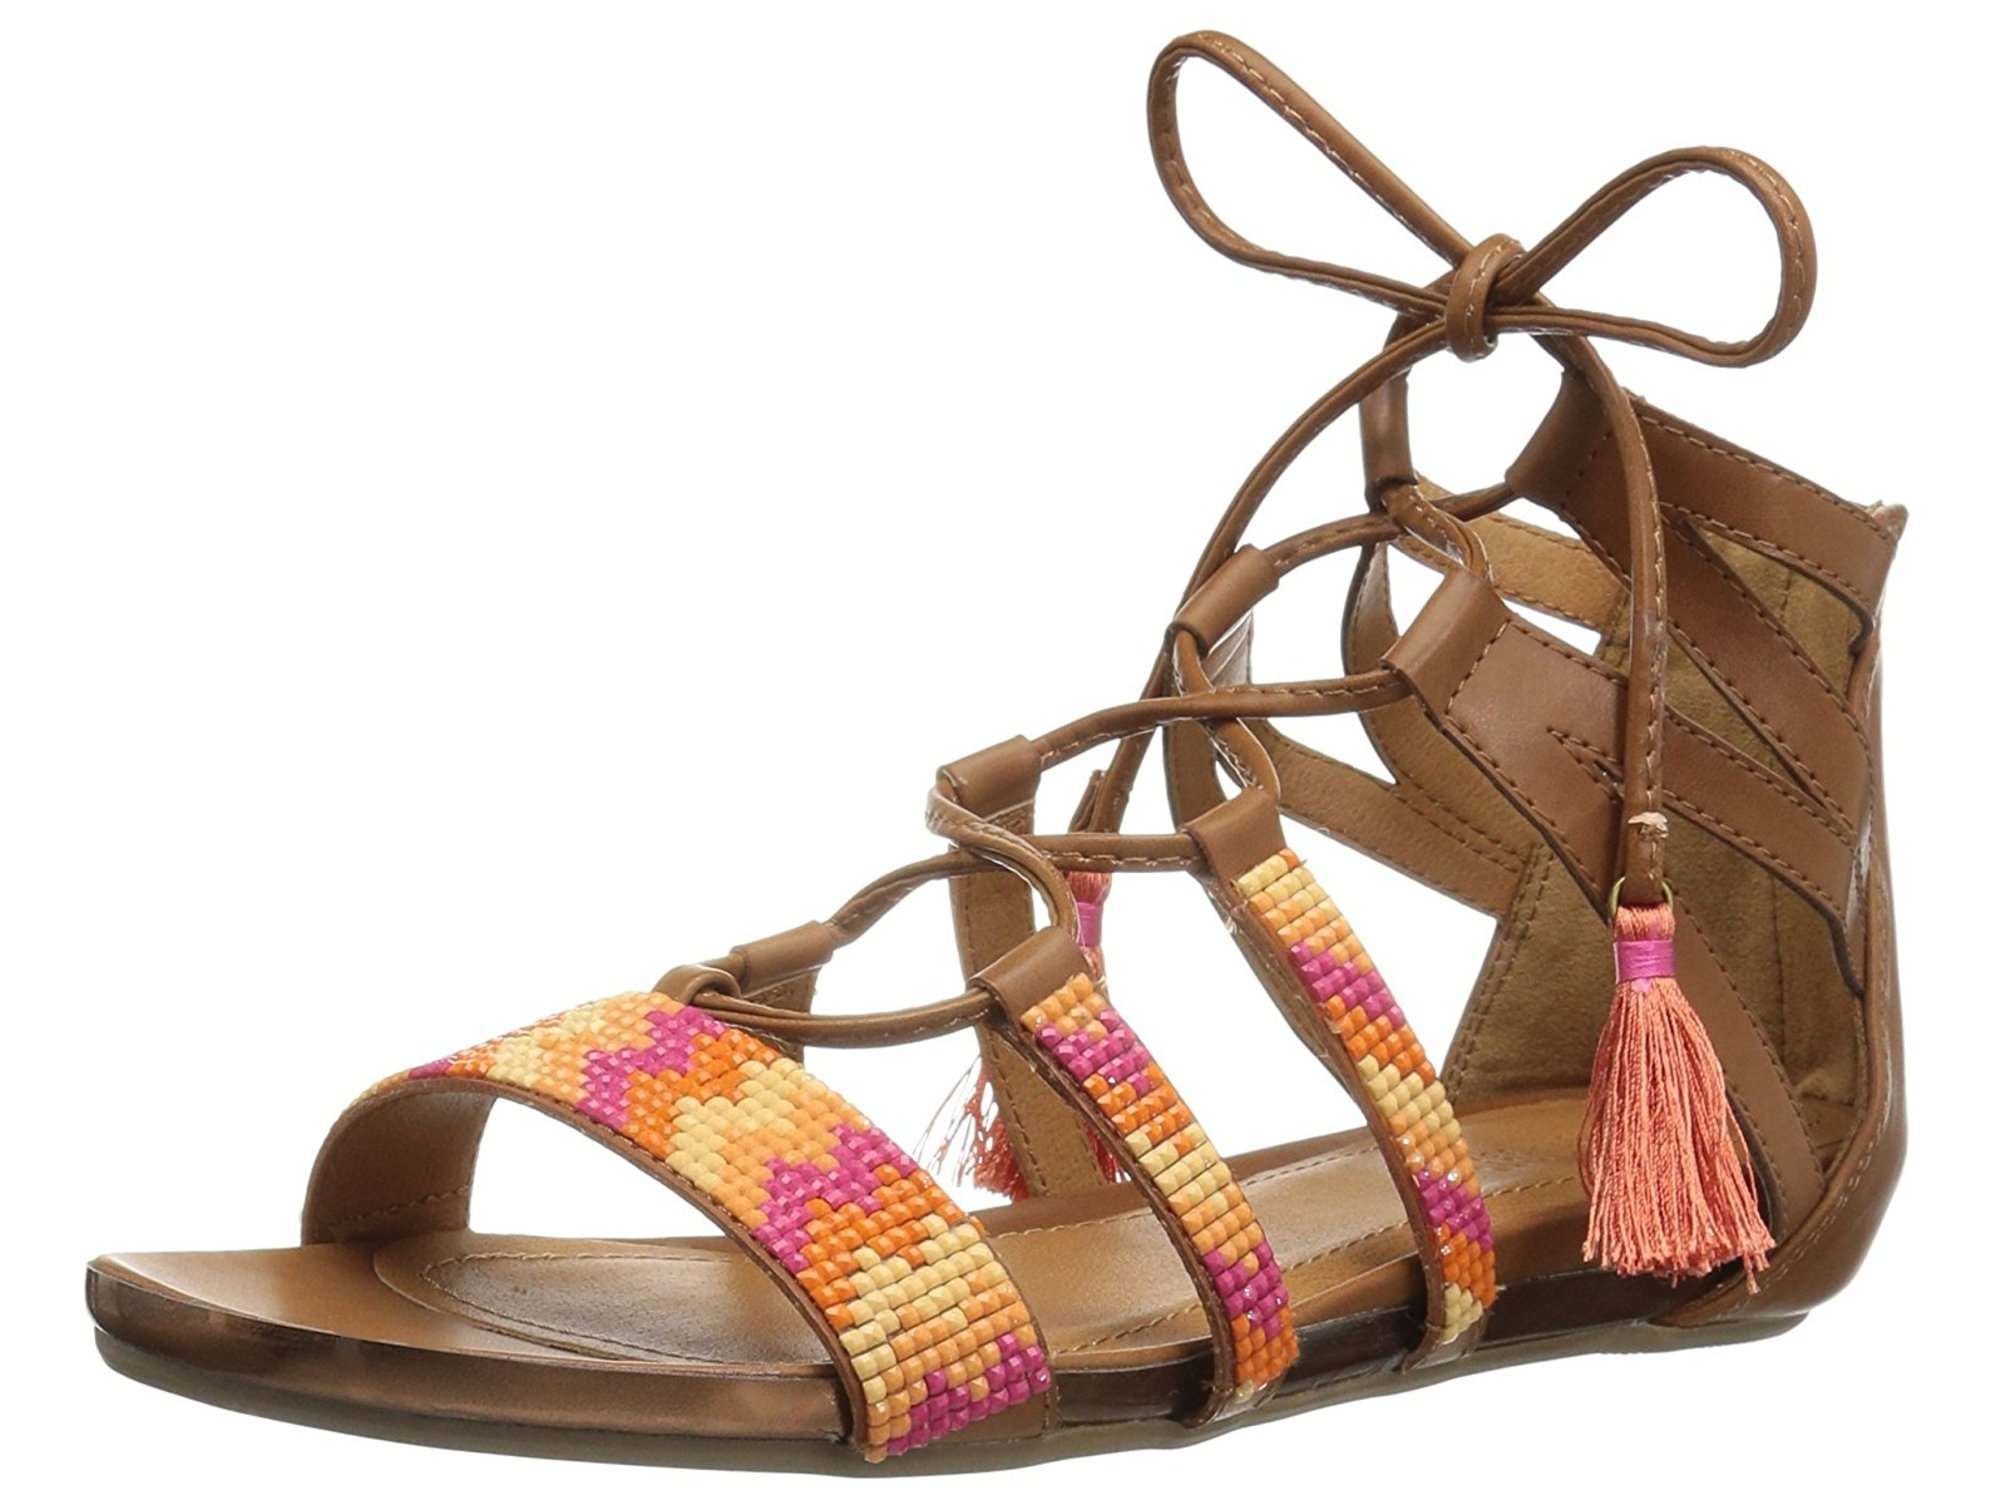 ae6352a0d31 Kenneth Cole REACTION Women s Lost Look 2 Gladiator Sandal